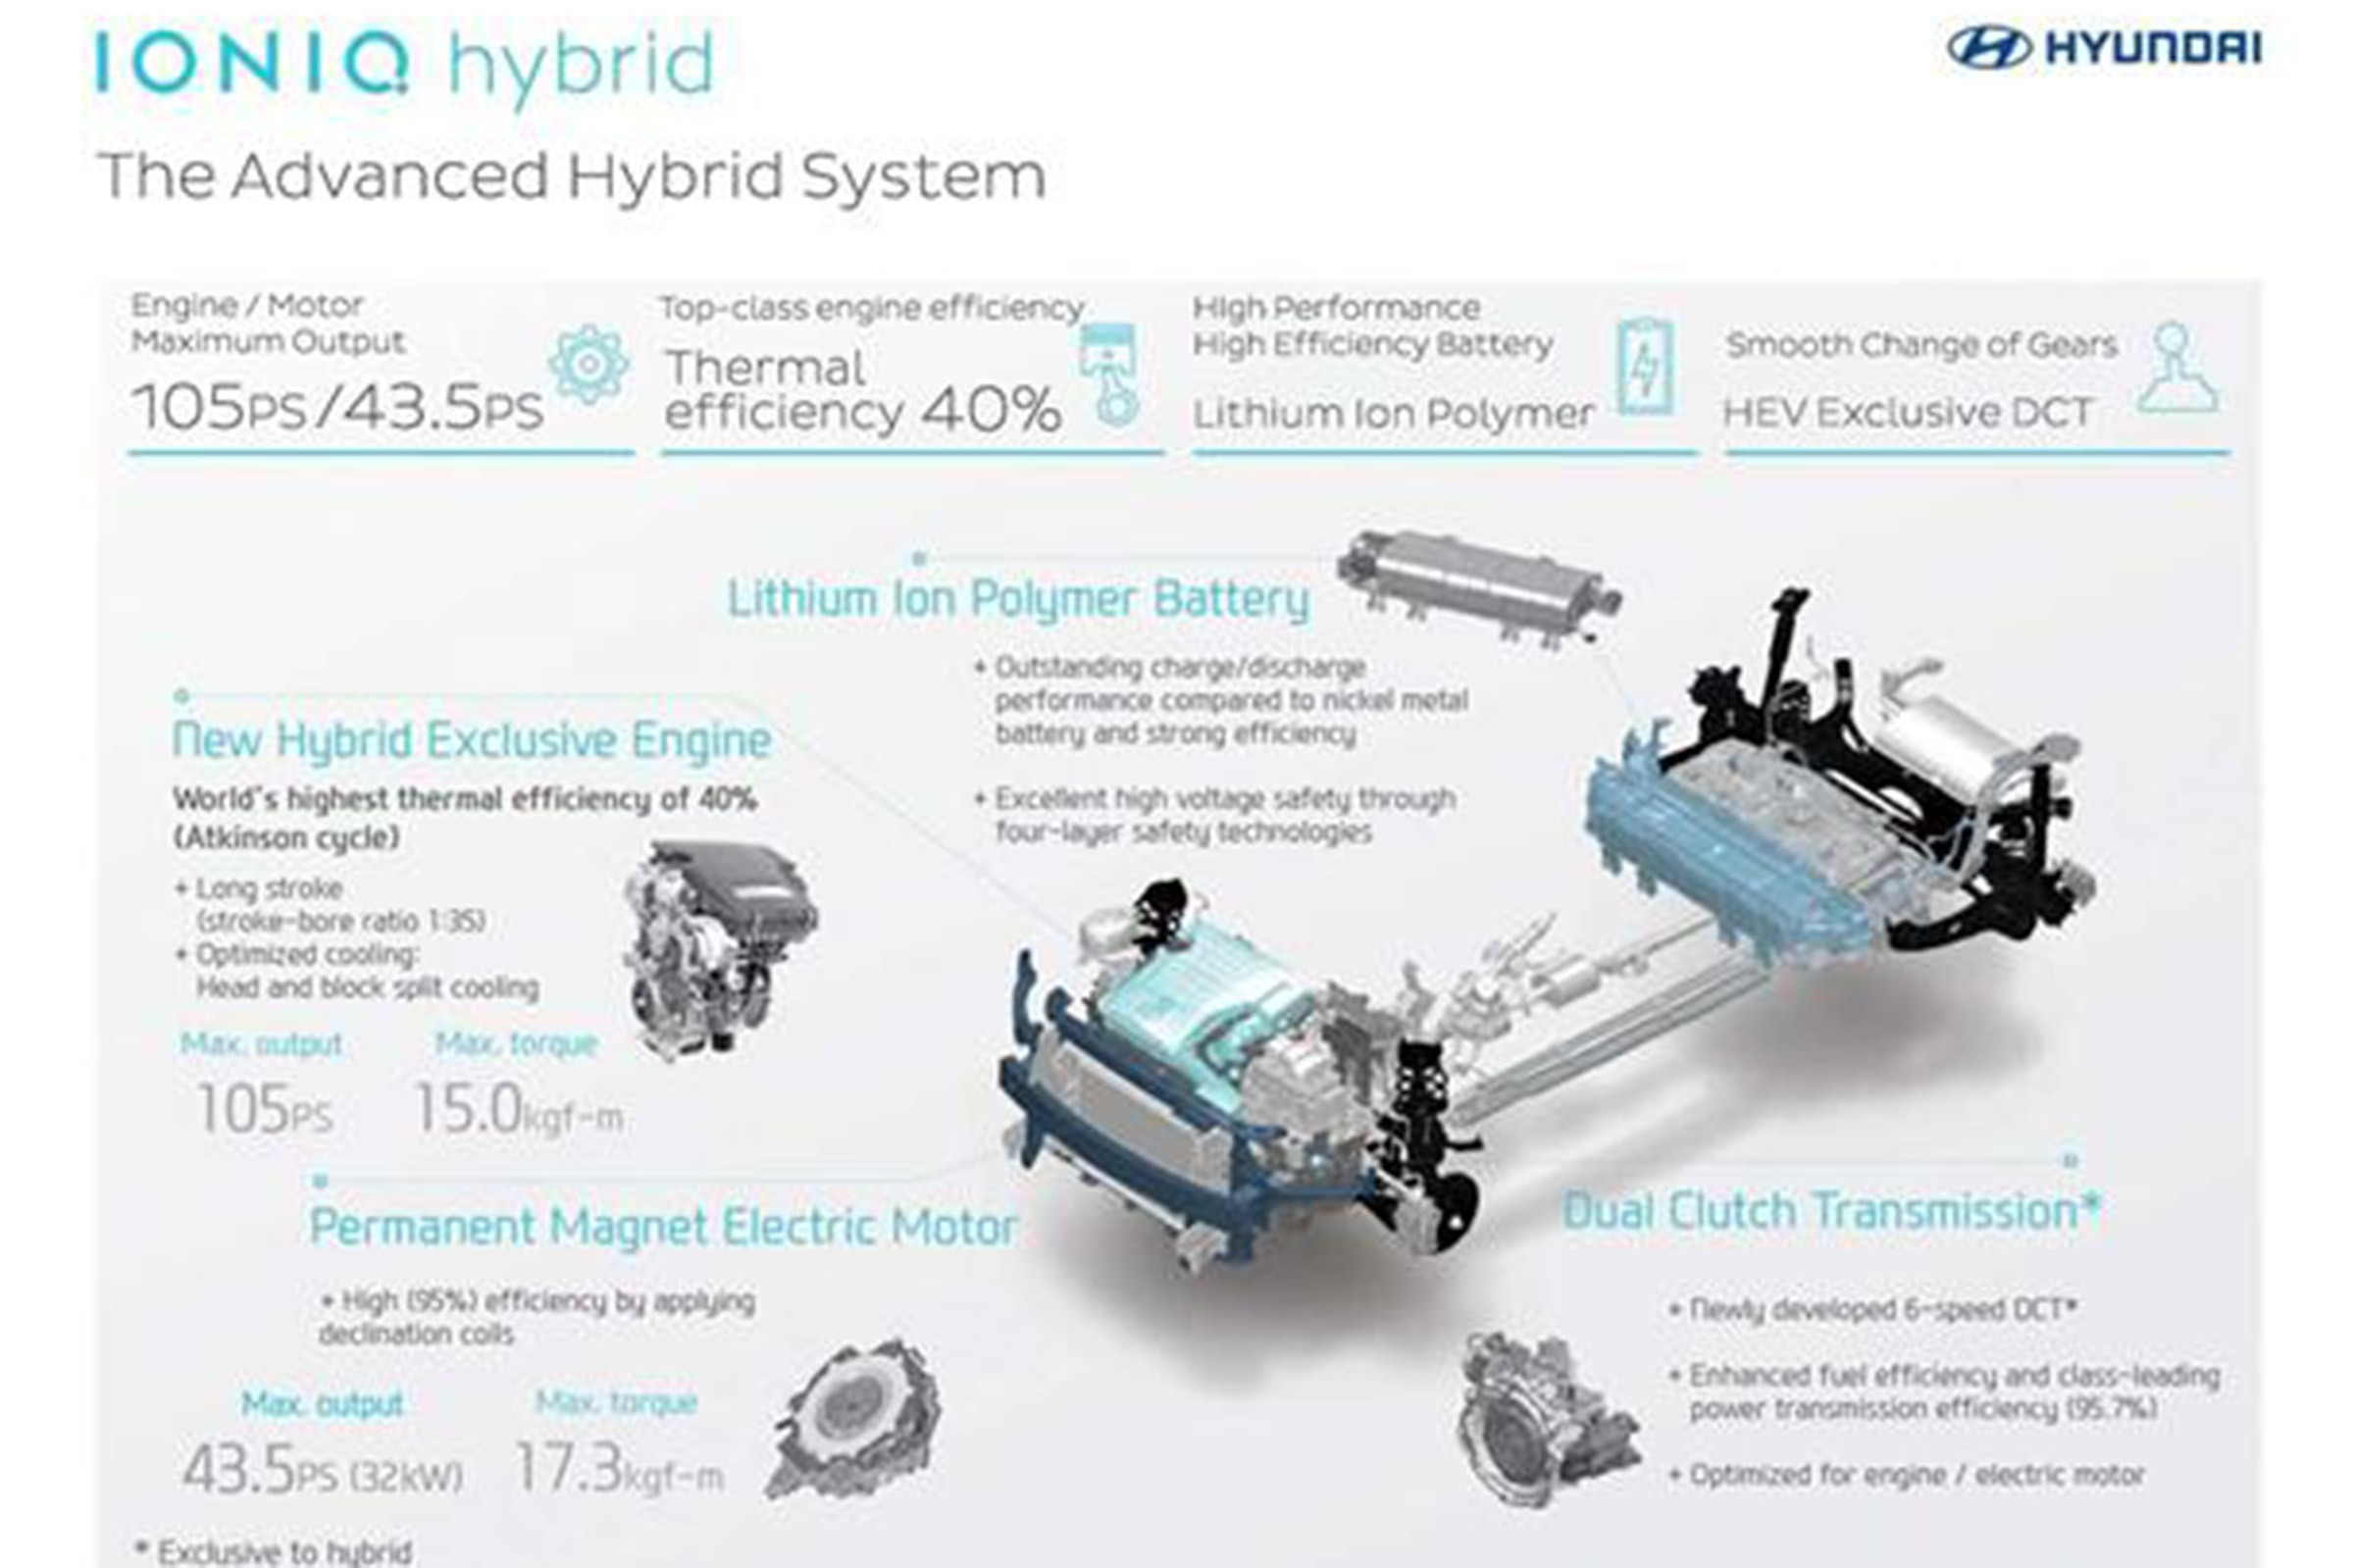 Prius Engine Diagram 2010 2015 Toyota Air Filter Hyundai And Kia Plan Eco Explosion With Major Hybrid Tech Roll Out Of